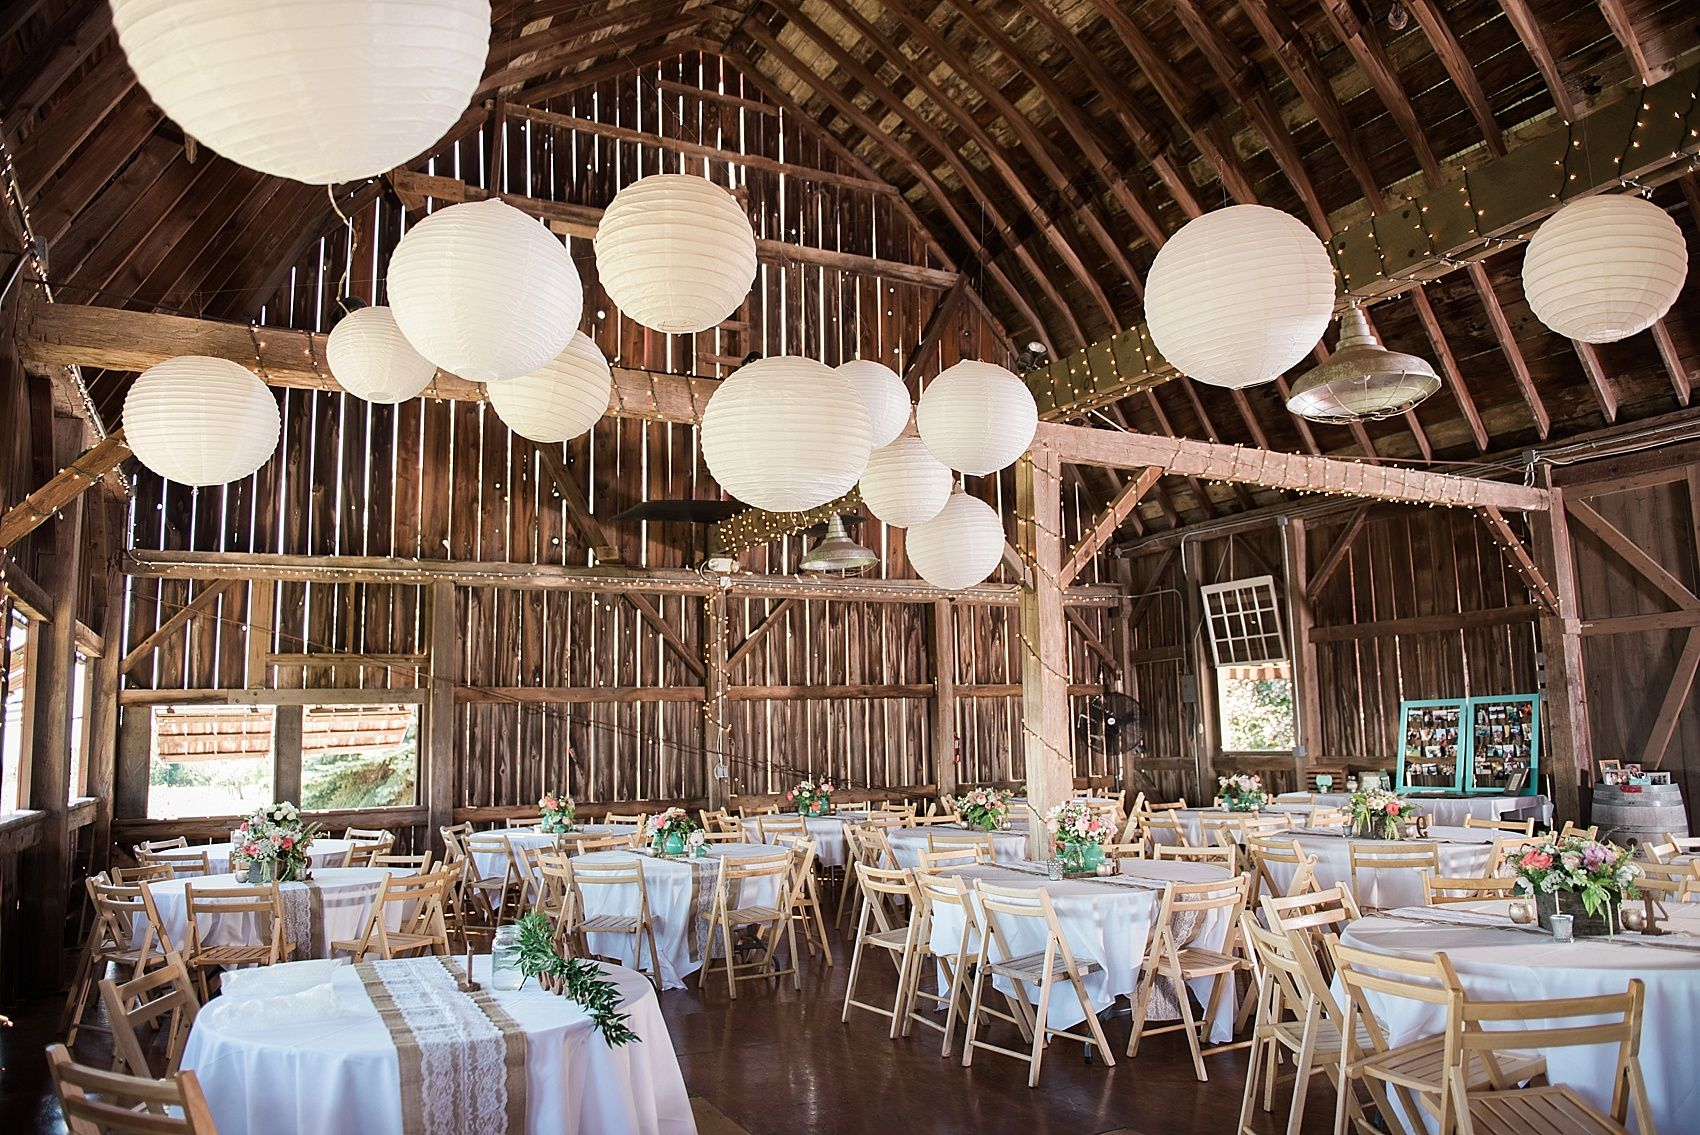 Cie Mike Ciccone Vineyard Destination Wedding Leelanau Peninsula